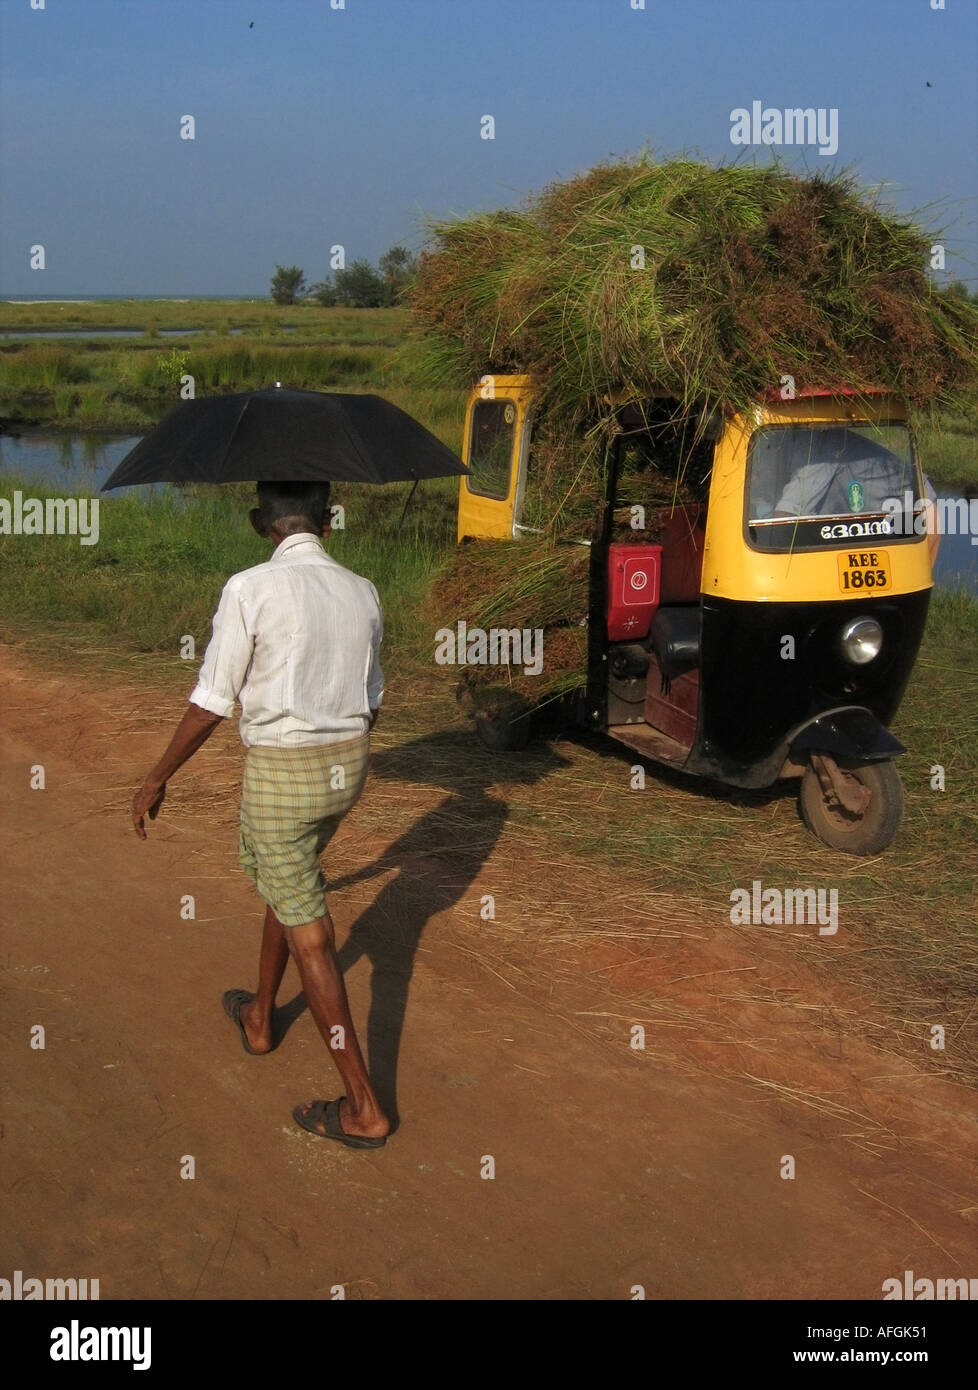 Man with umbrella passing a motor rickshaw loaded with grass or hay on Vypeen Beach on Vypeen Island in Kerala in India - Stock Image